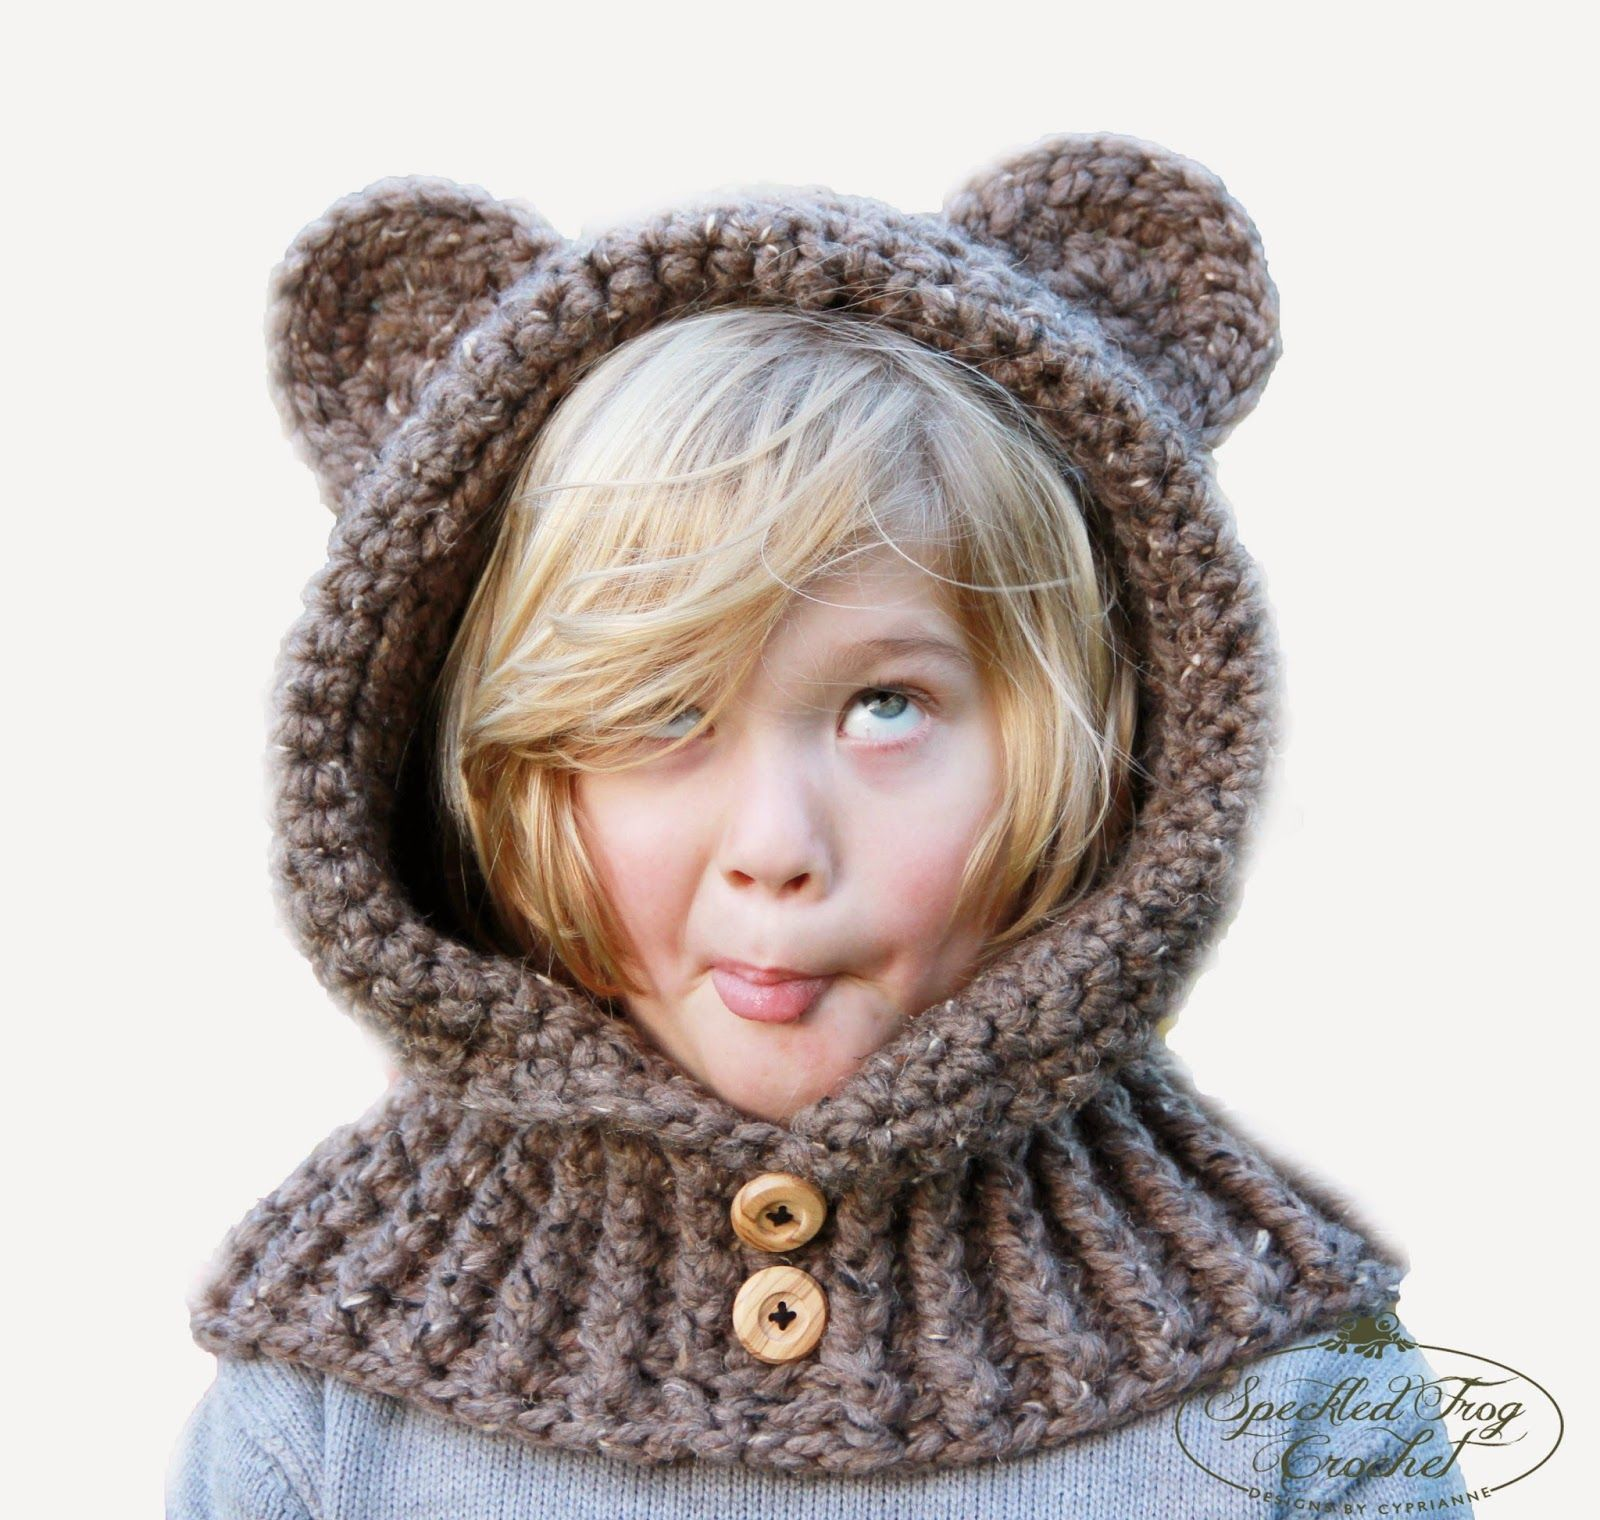 Free Crochet Fox Cowl Hat Pattern : Speckled Frog Crochet: CROCHET HOODED BEAR COWL PATTERN ...